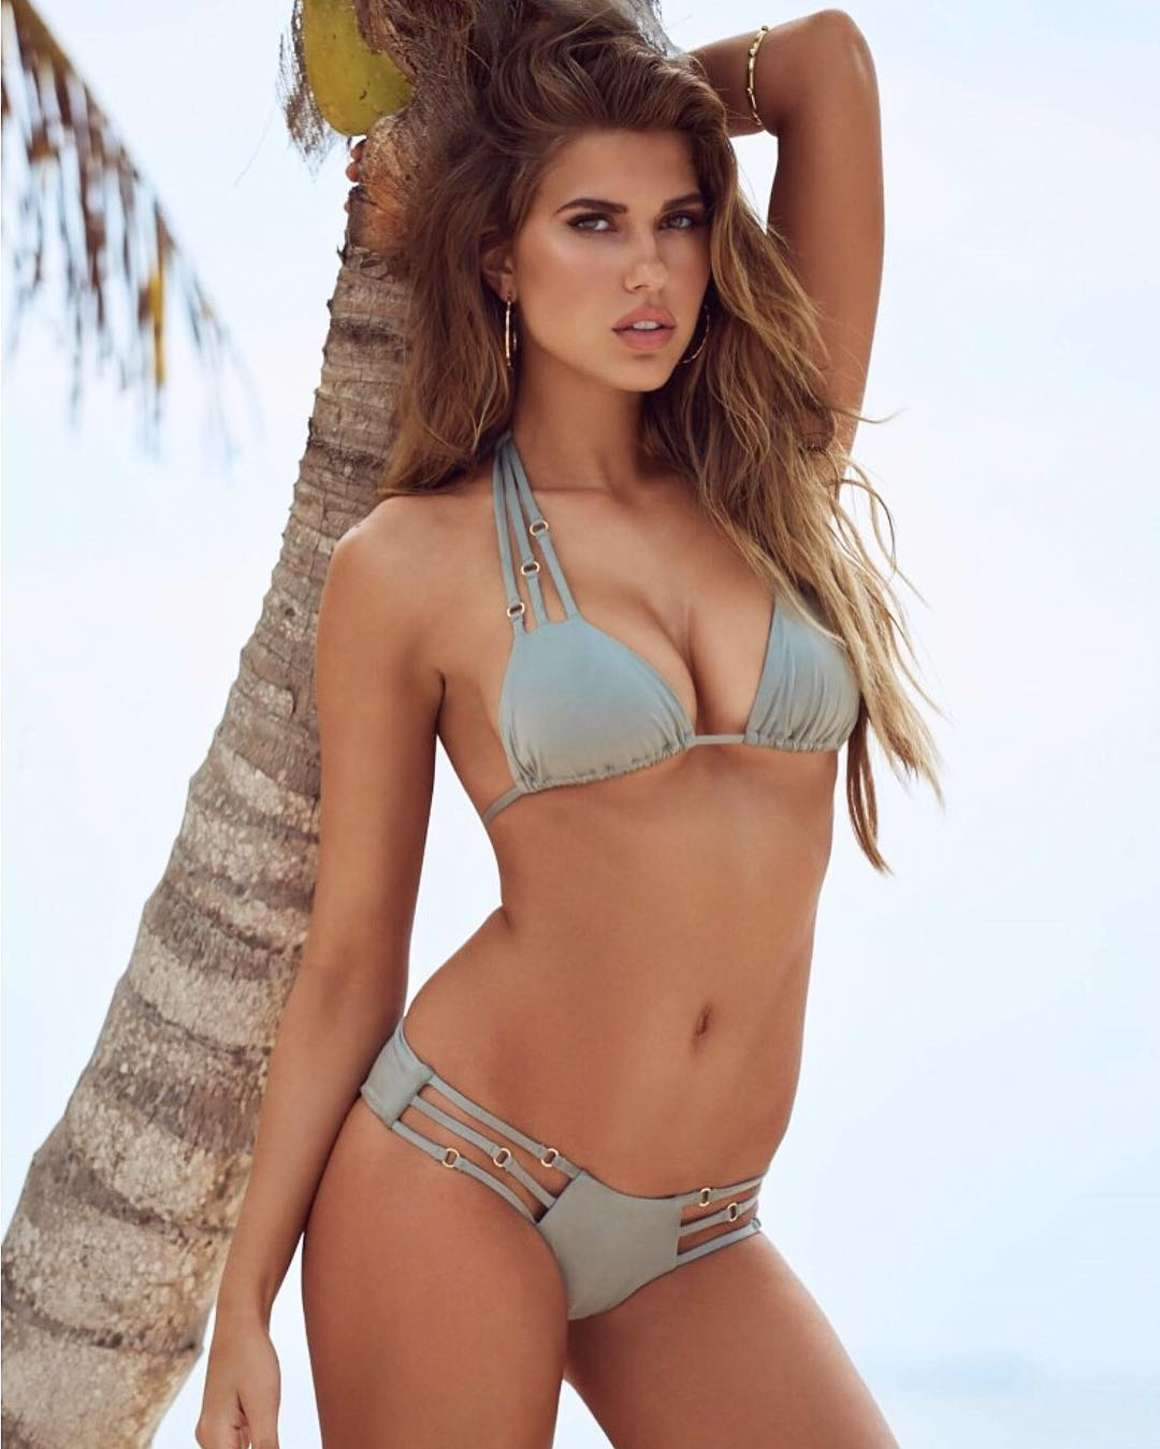 Kara Del Toro in Bikini Hot Photos  Pic 10 of 35